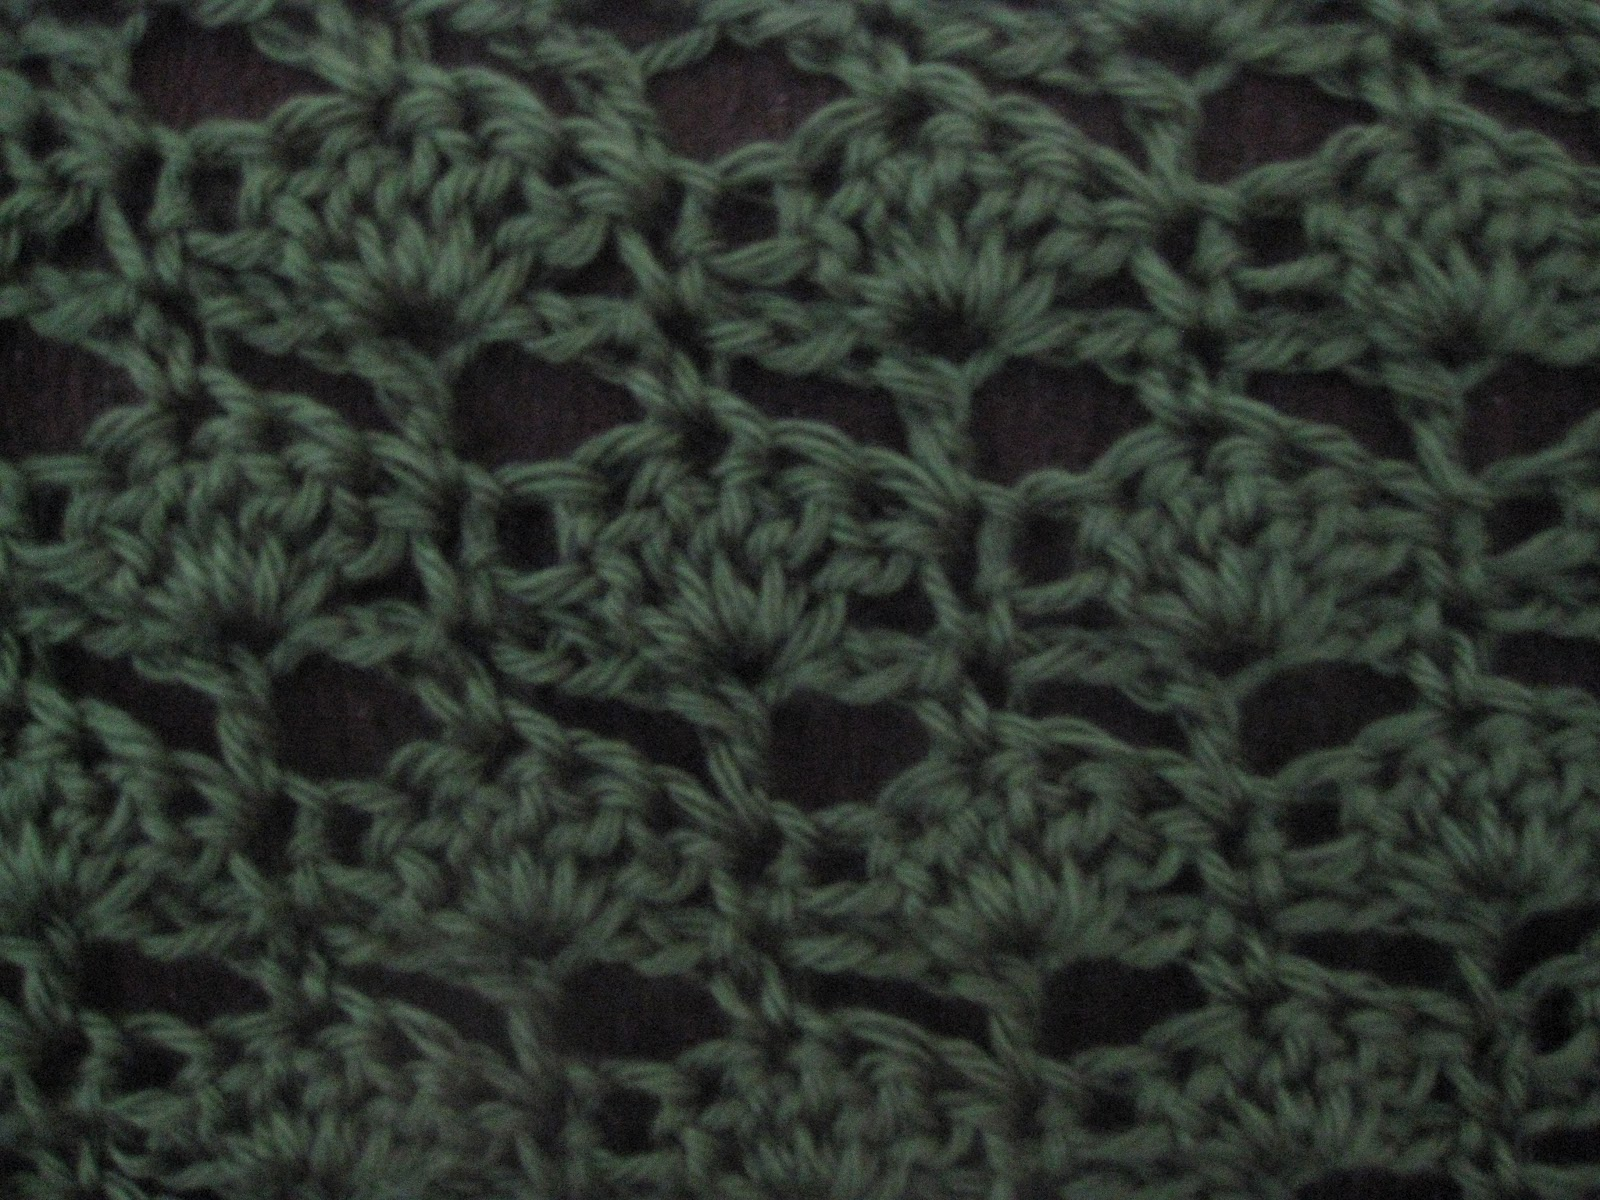 Crochet Stitches Shell Video : Engineered Crochet: Spaced Shell Stitch